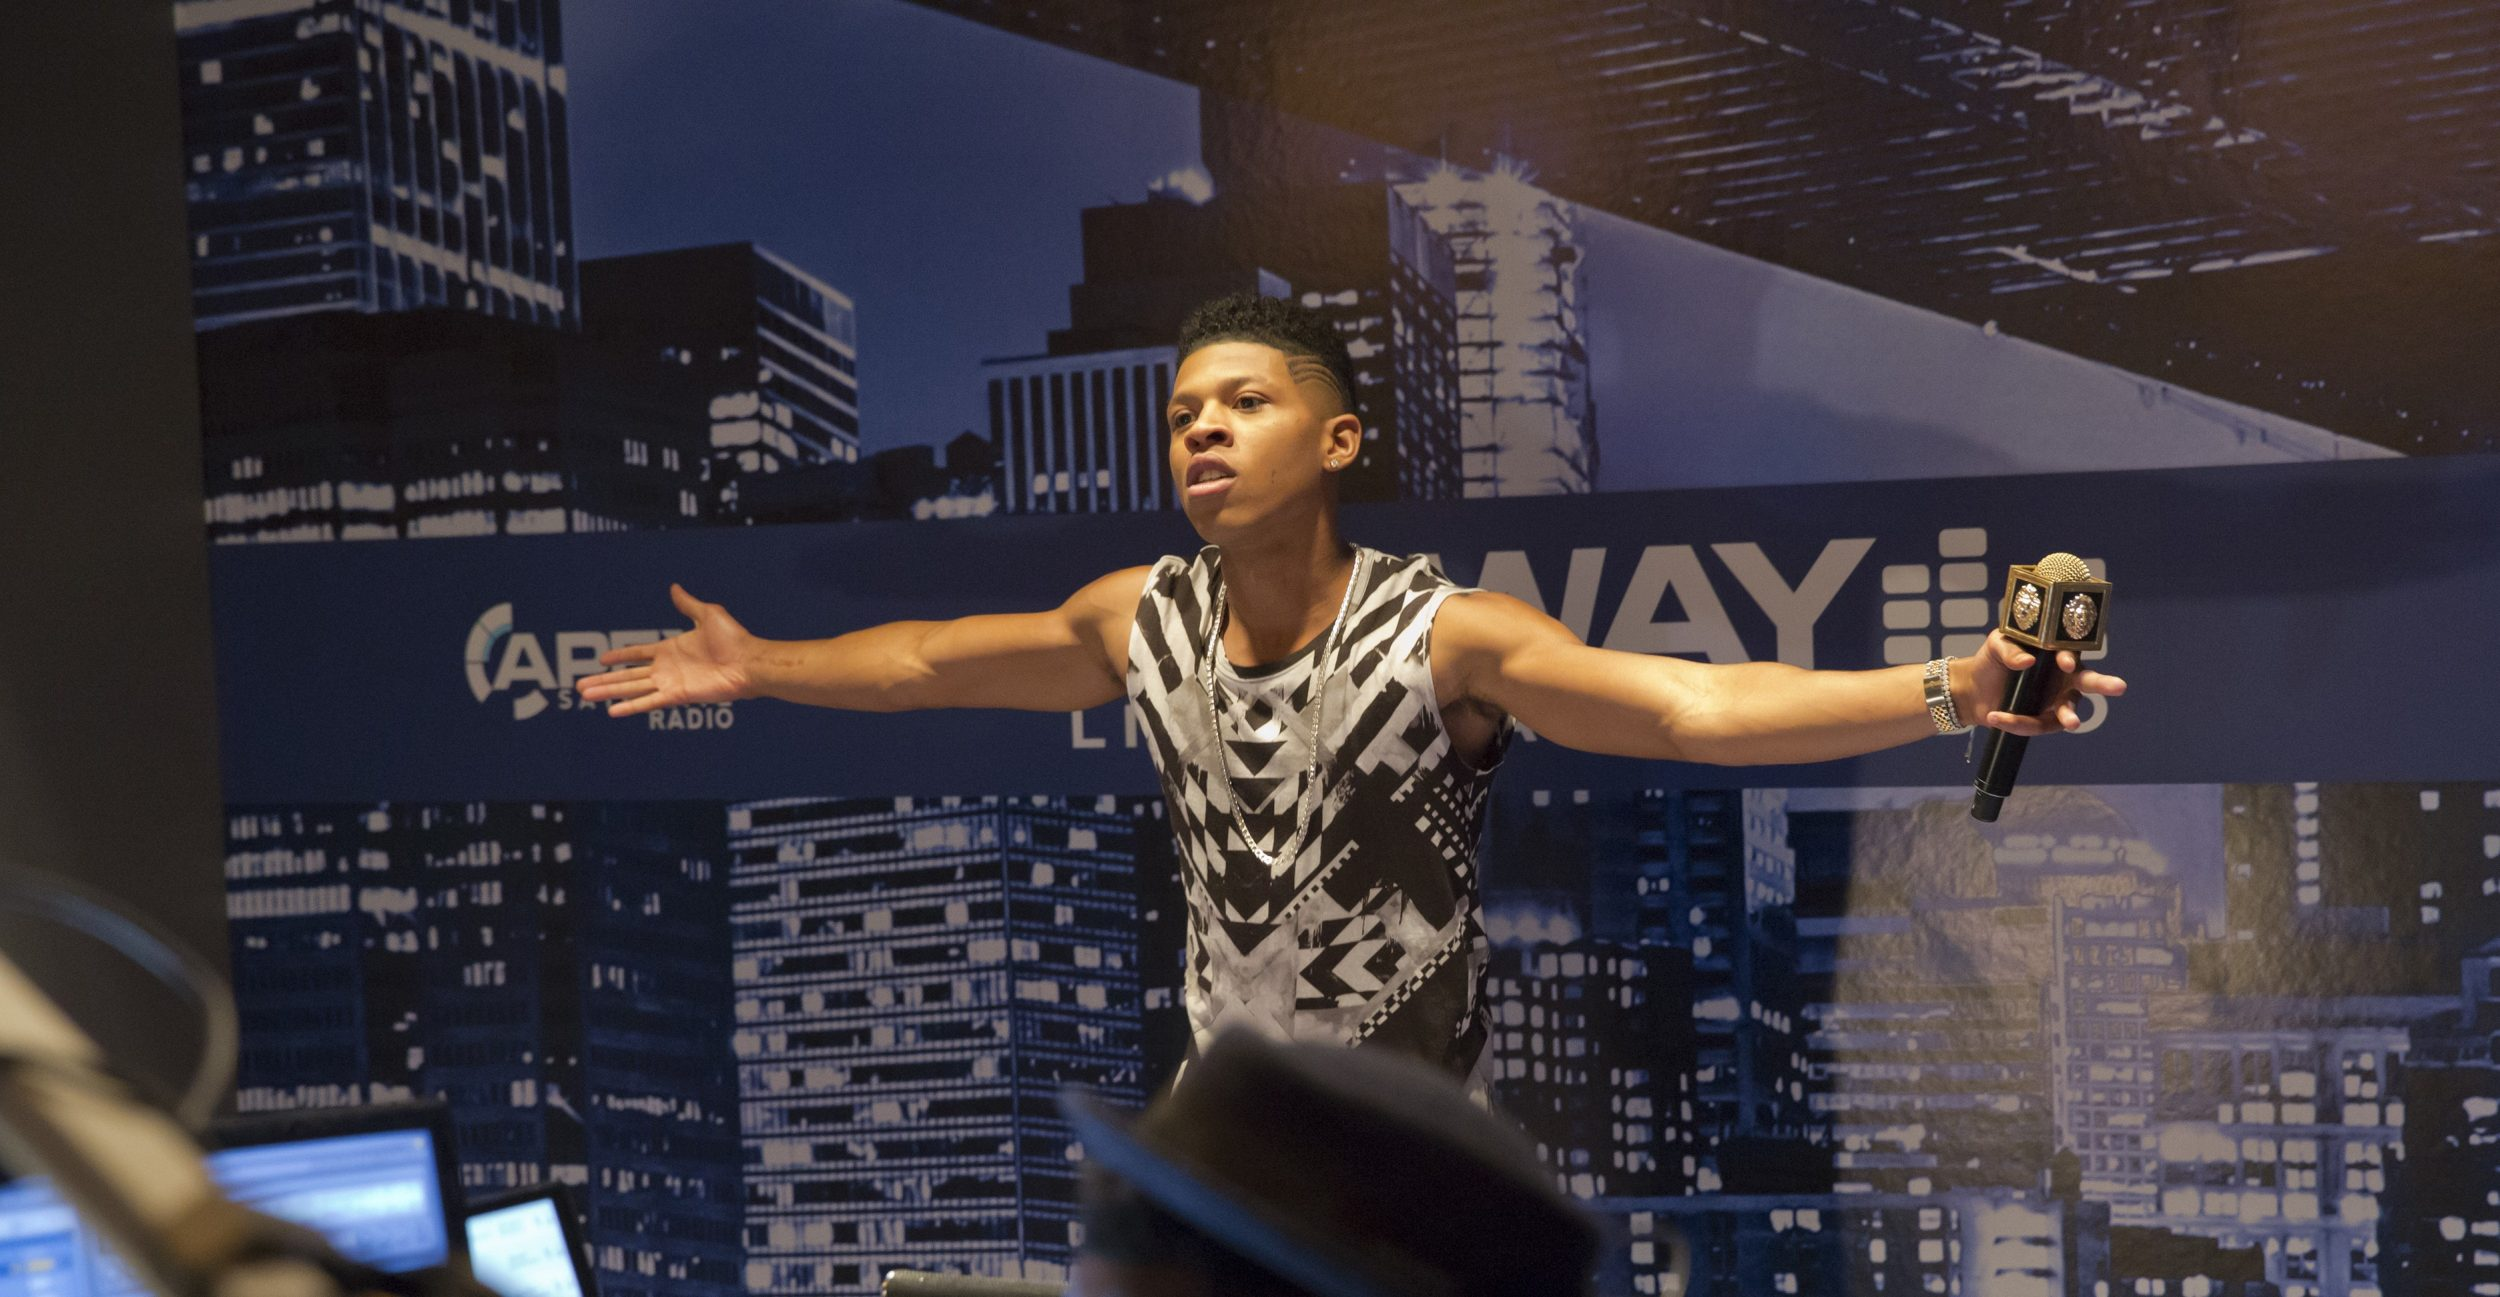 """On The Verge Halsey: Empire's Yazz Scores IHeartRadio """"On The Verge"""" Boost For"""